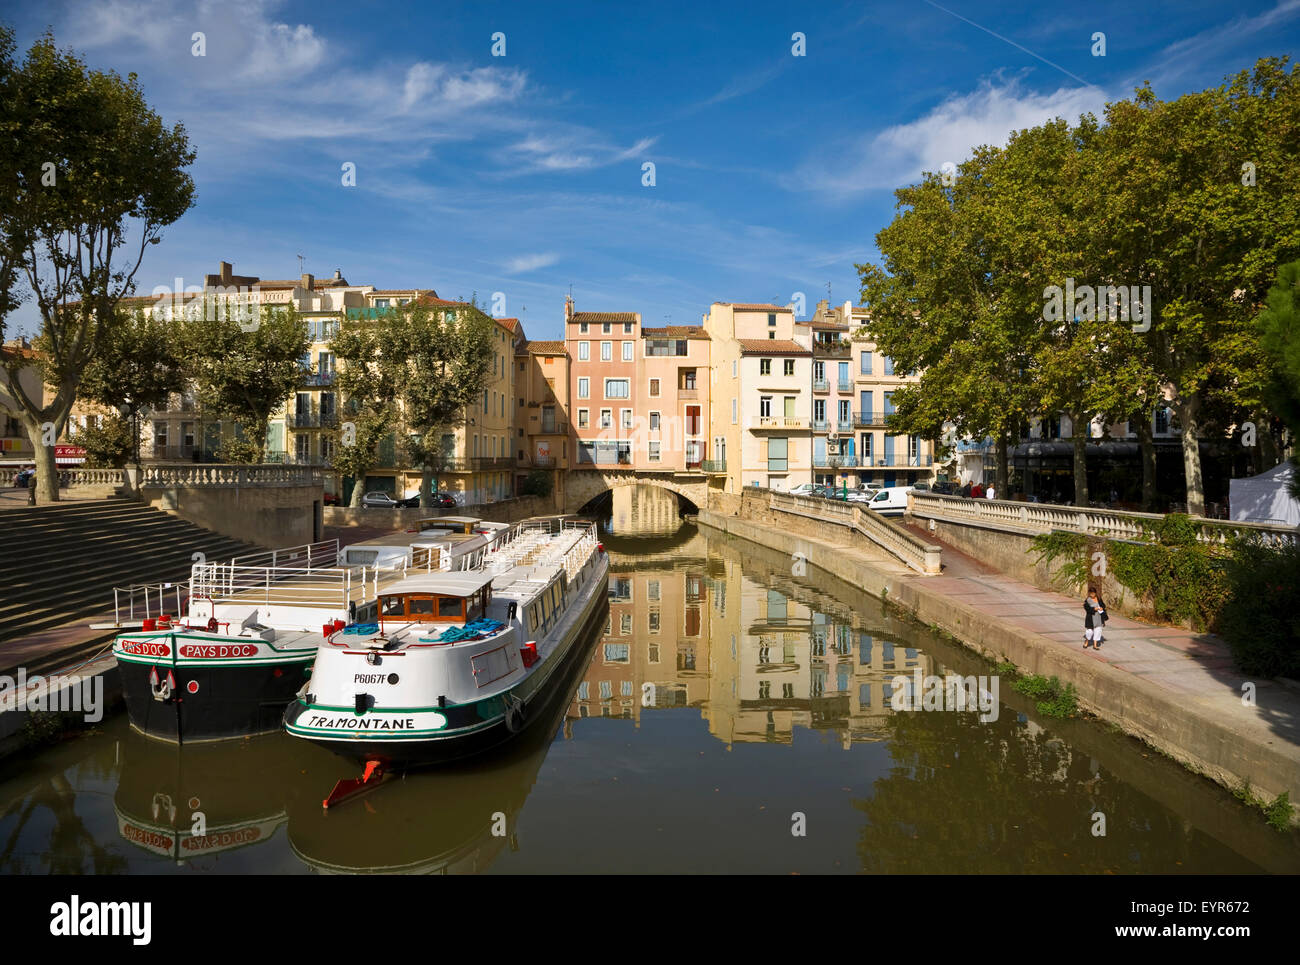 Barges on the Canal du Midi as it runs under the 1st Century Pont de Marchands inhabited bridge in Narbonne, Languedoc - Stock Image